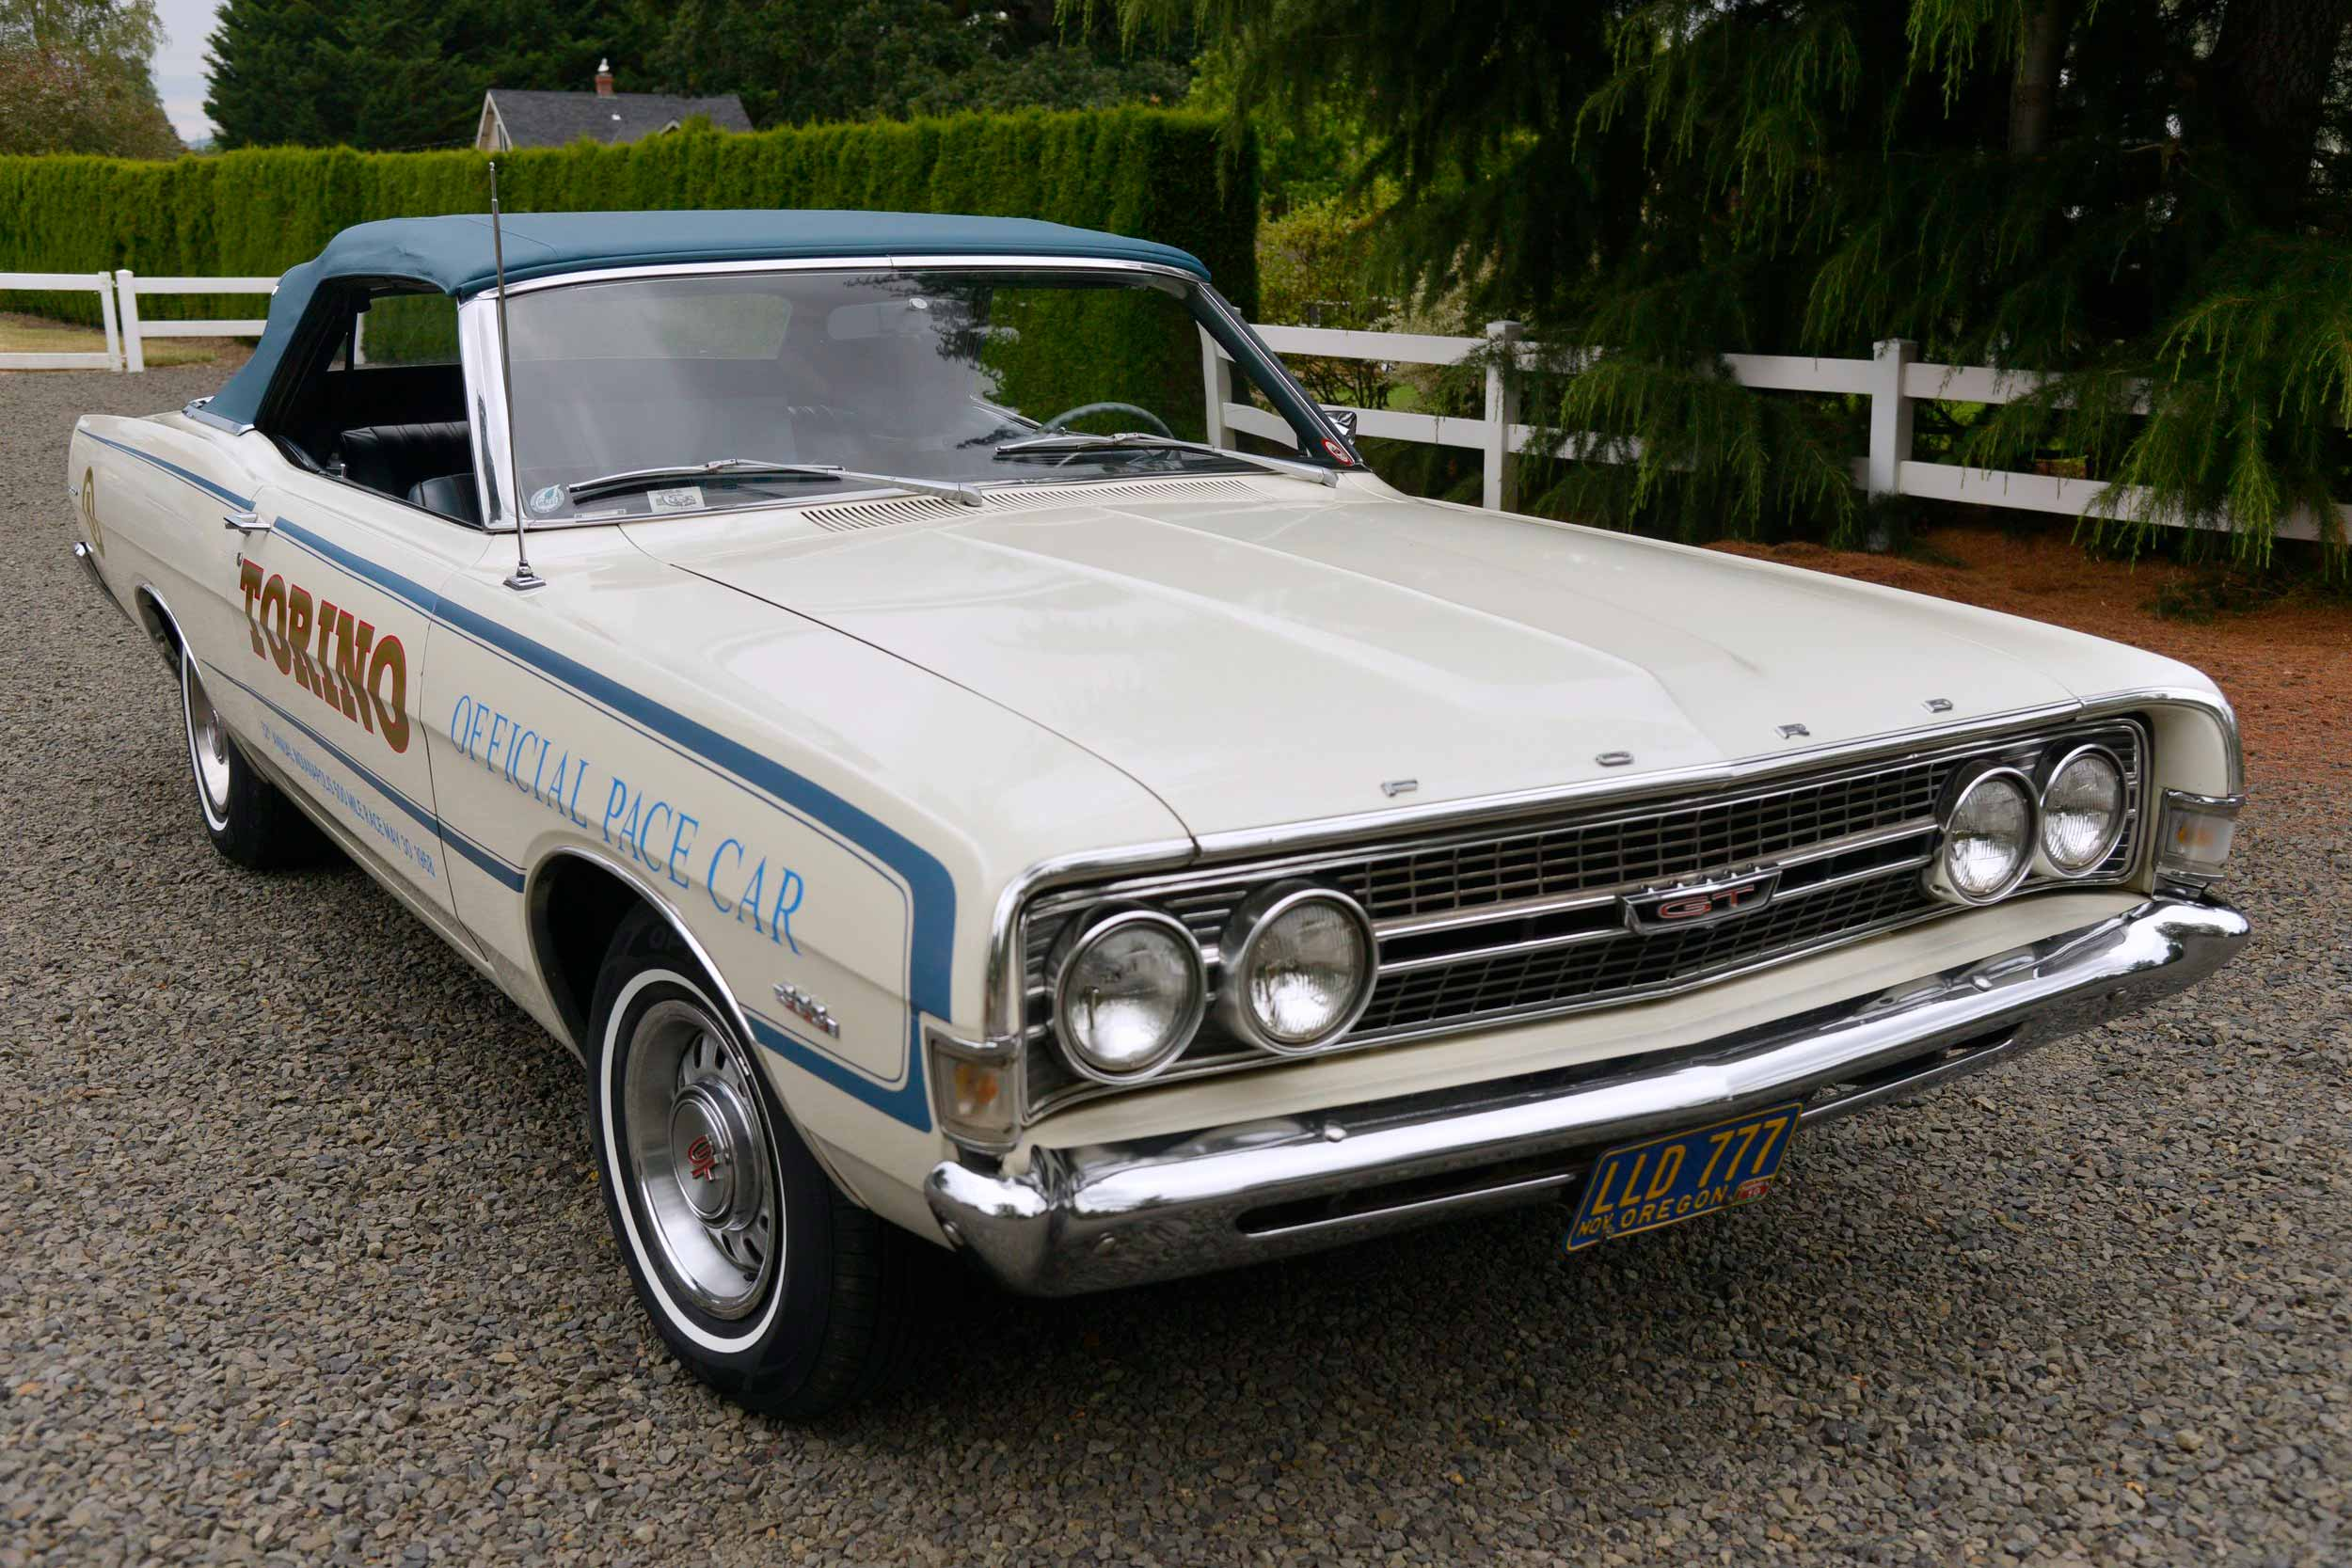 1968 Ford Torino GT Pace Car Edition